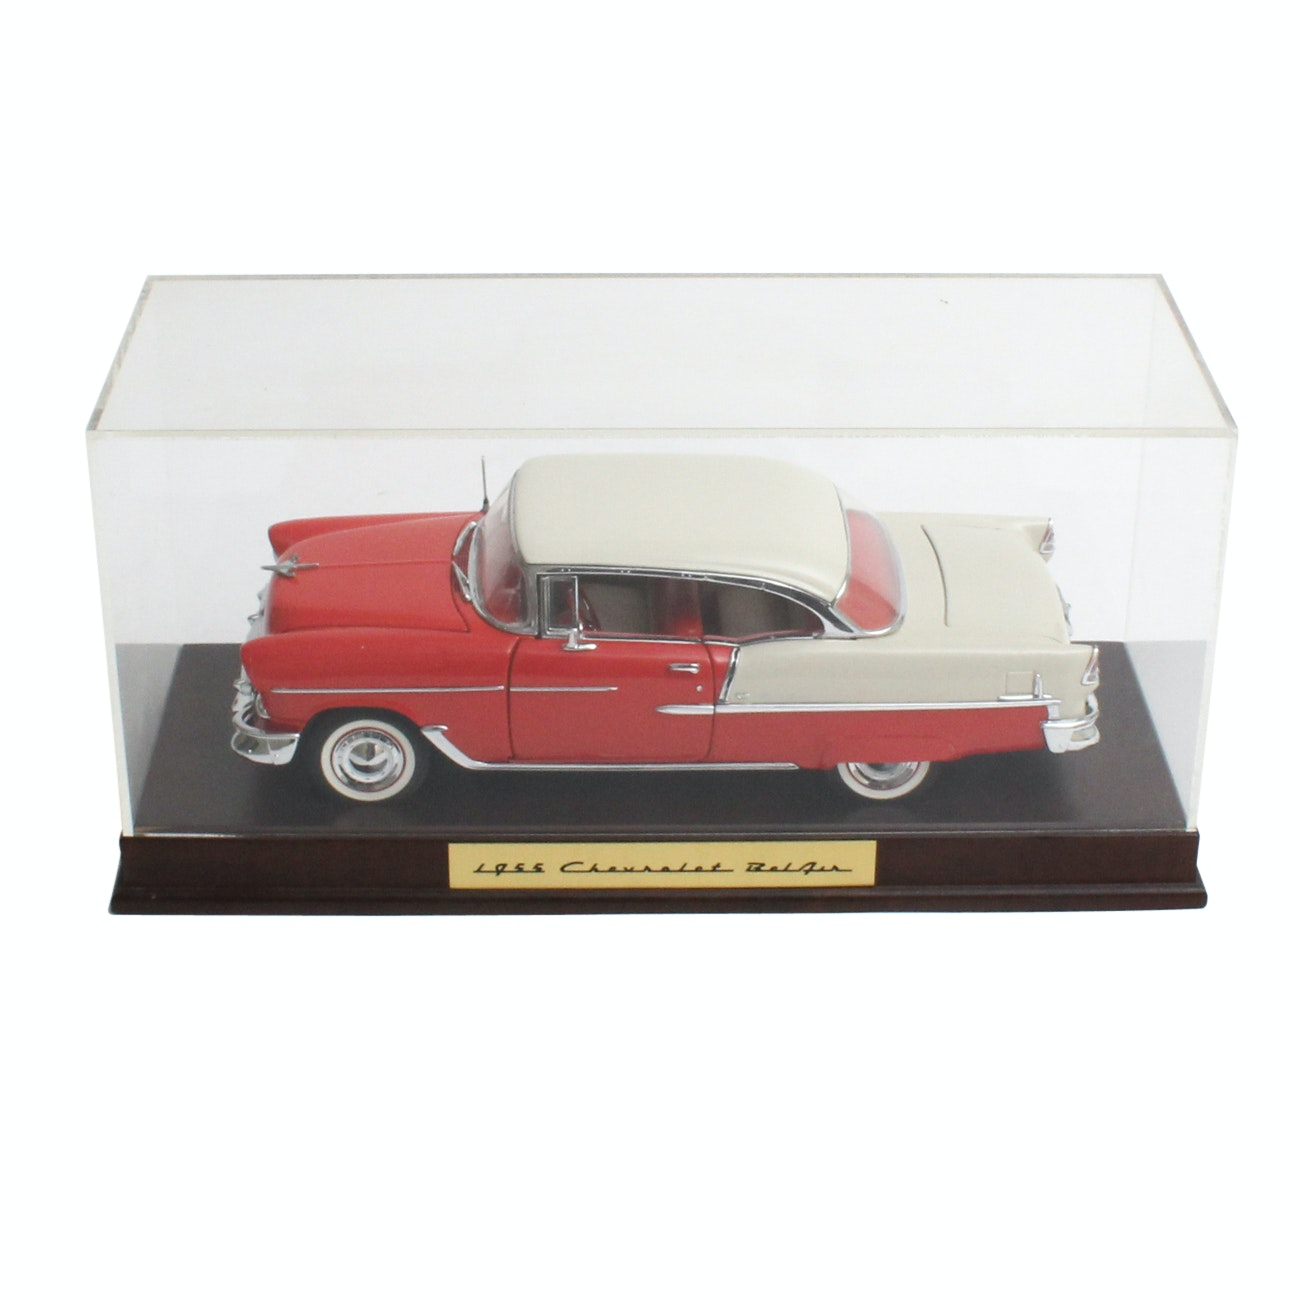 Danbury Mint 1955 Chevrolet Bel Air